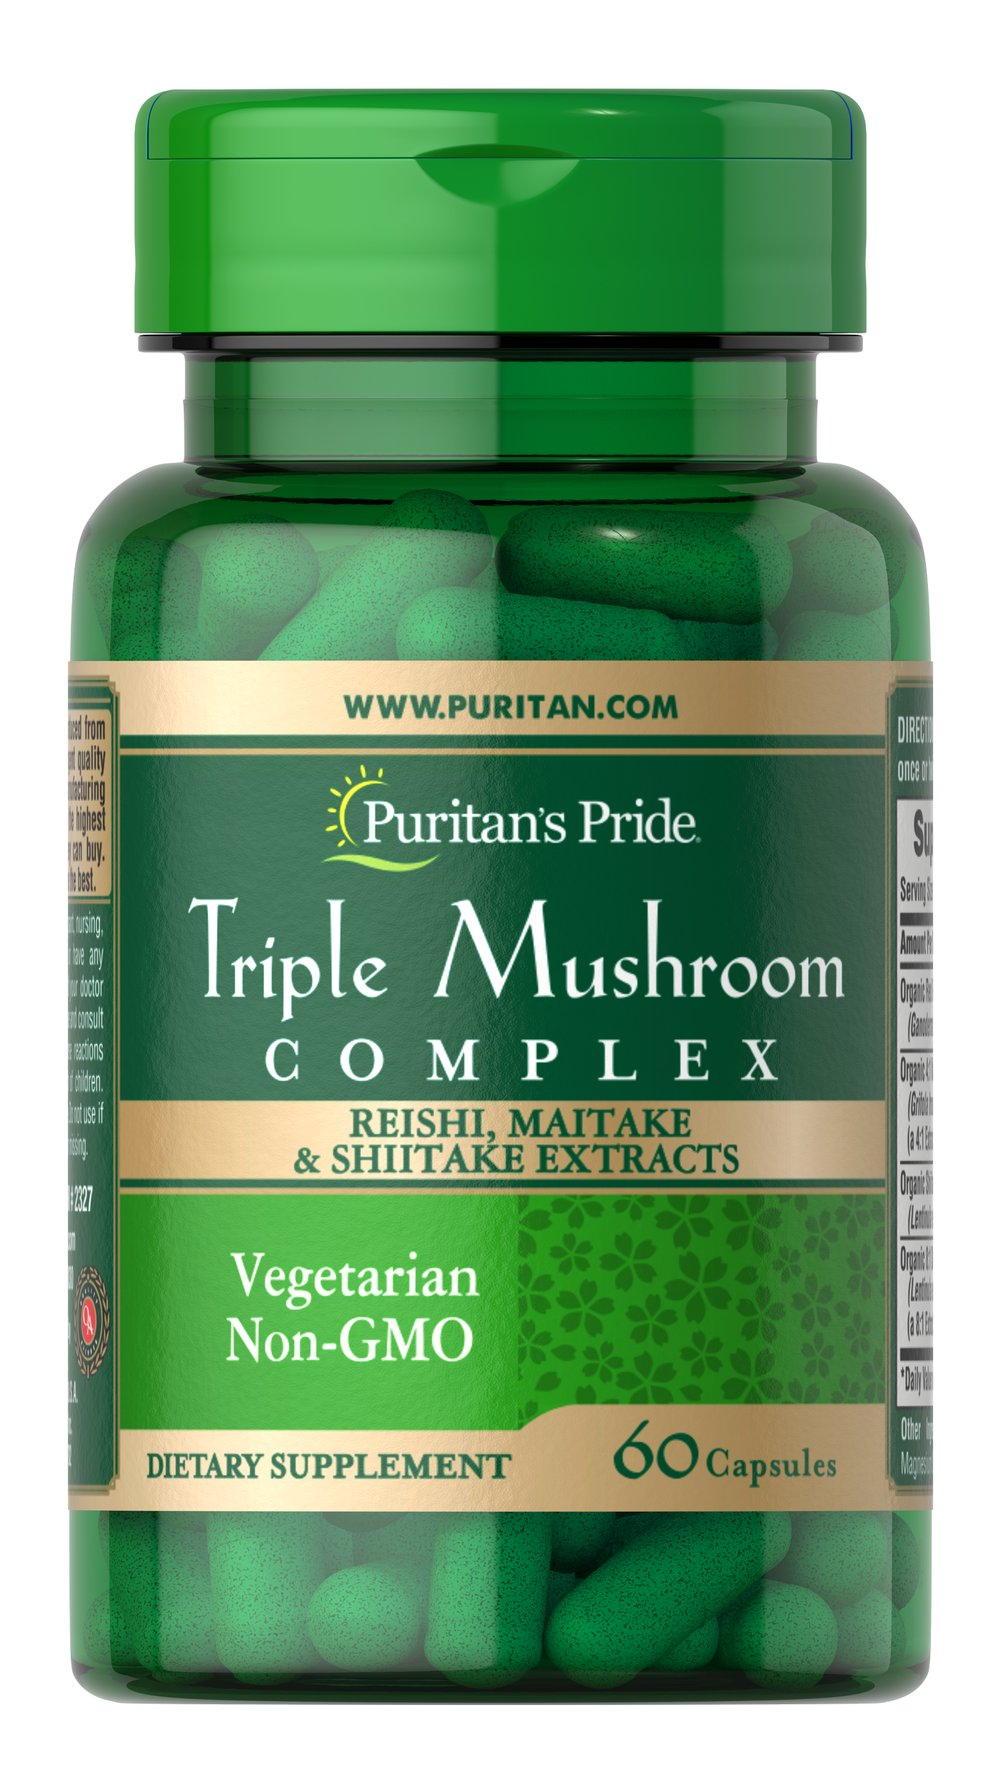 Triple Mushroom Complex Reishi Shiitake Maitake Thumbnail Alternate Bottle View